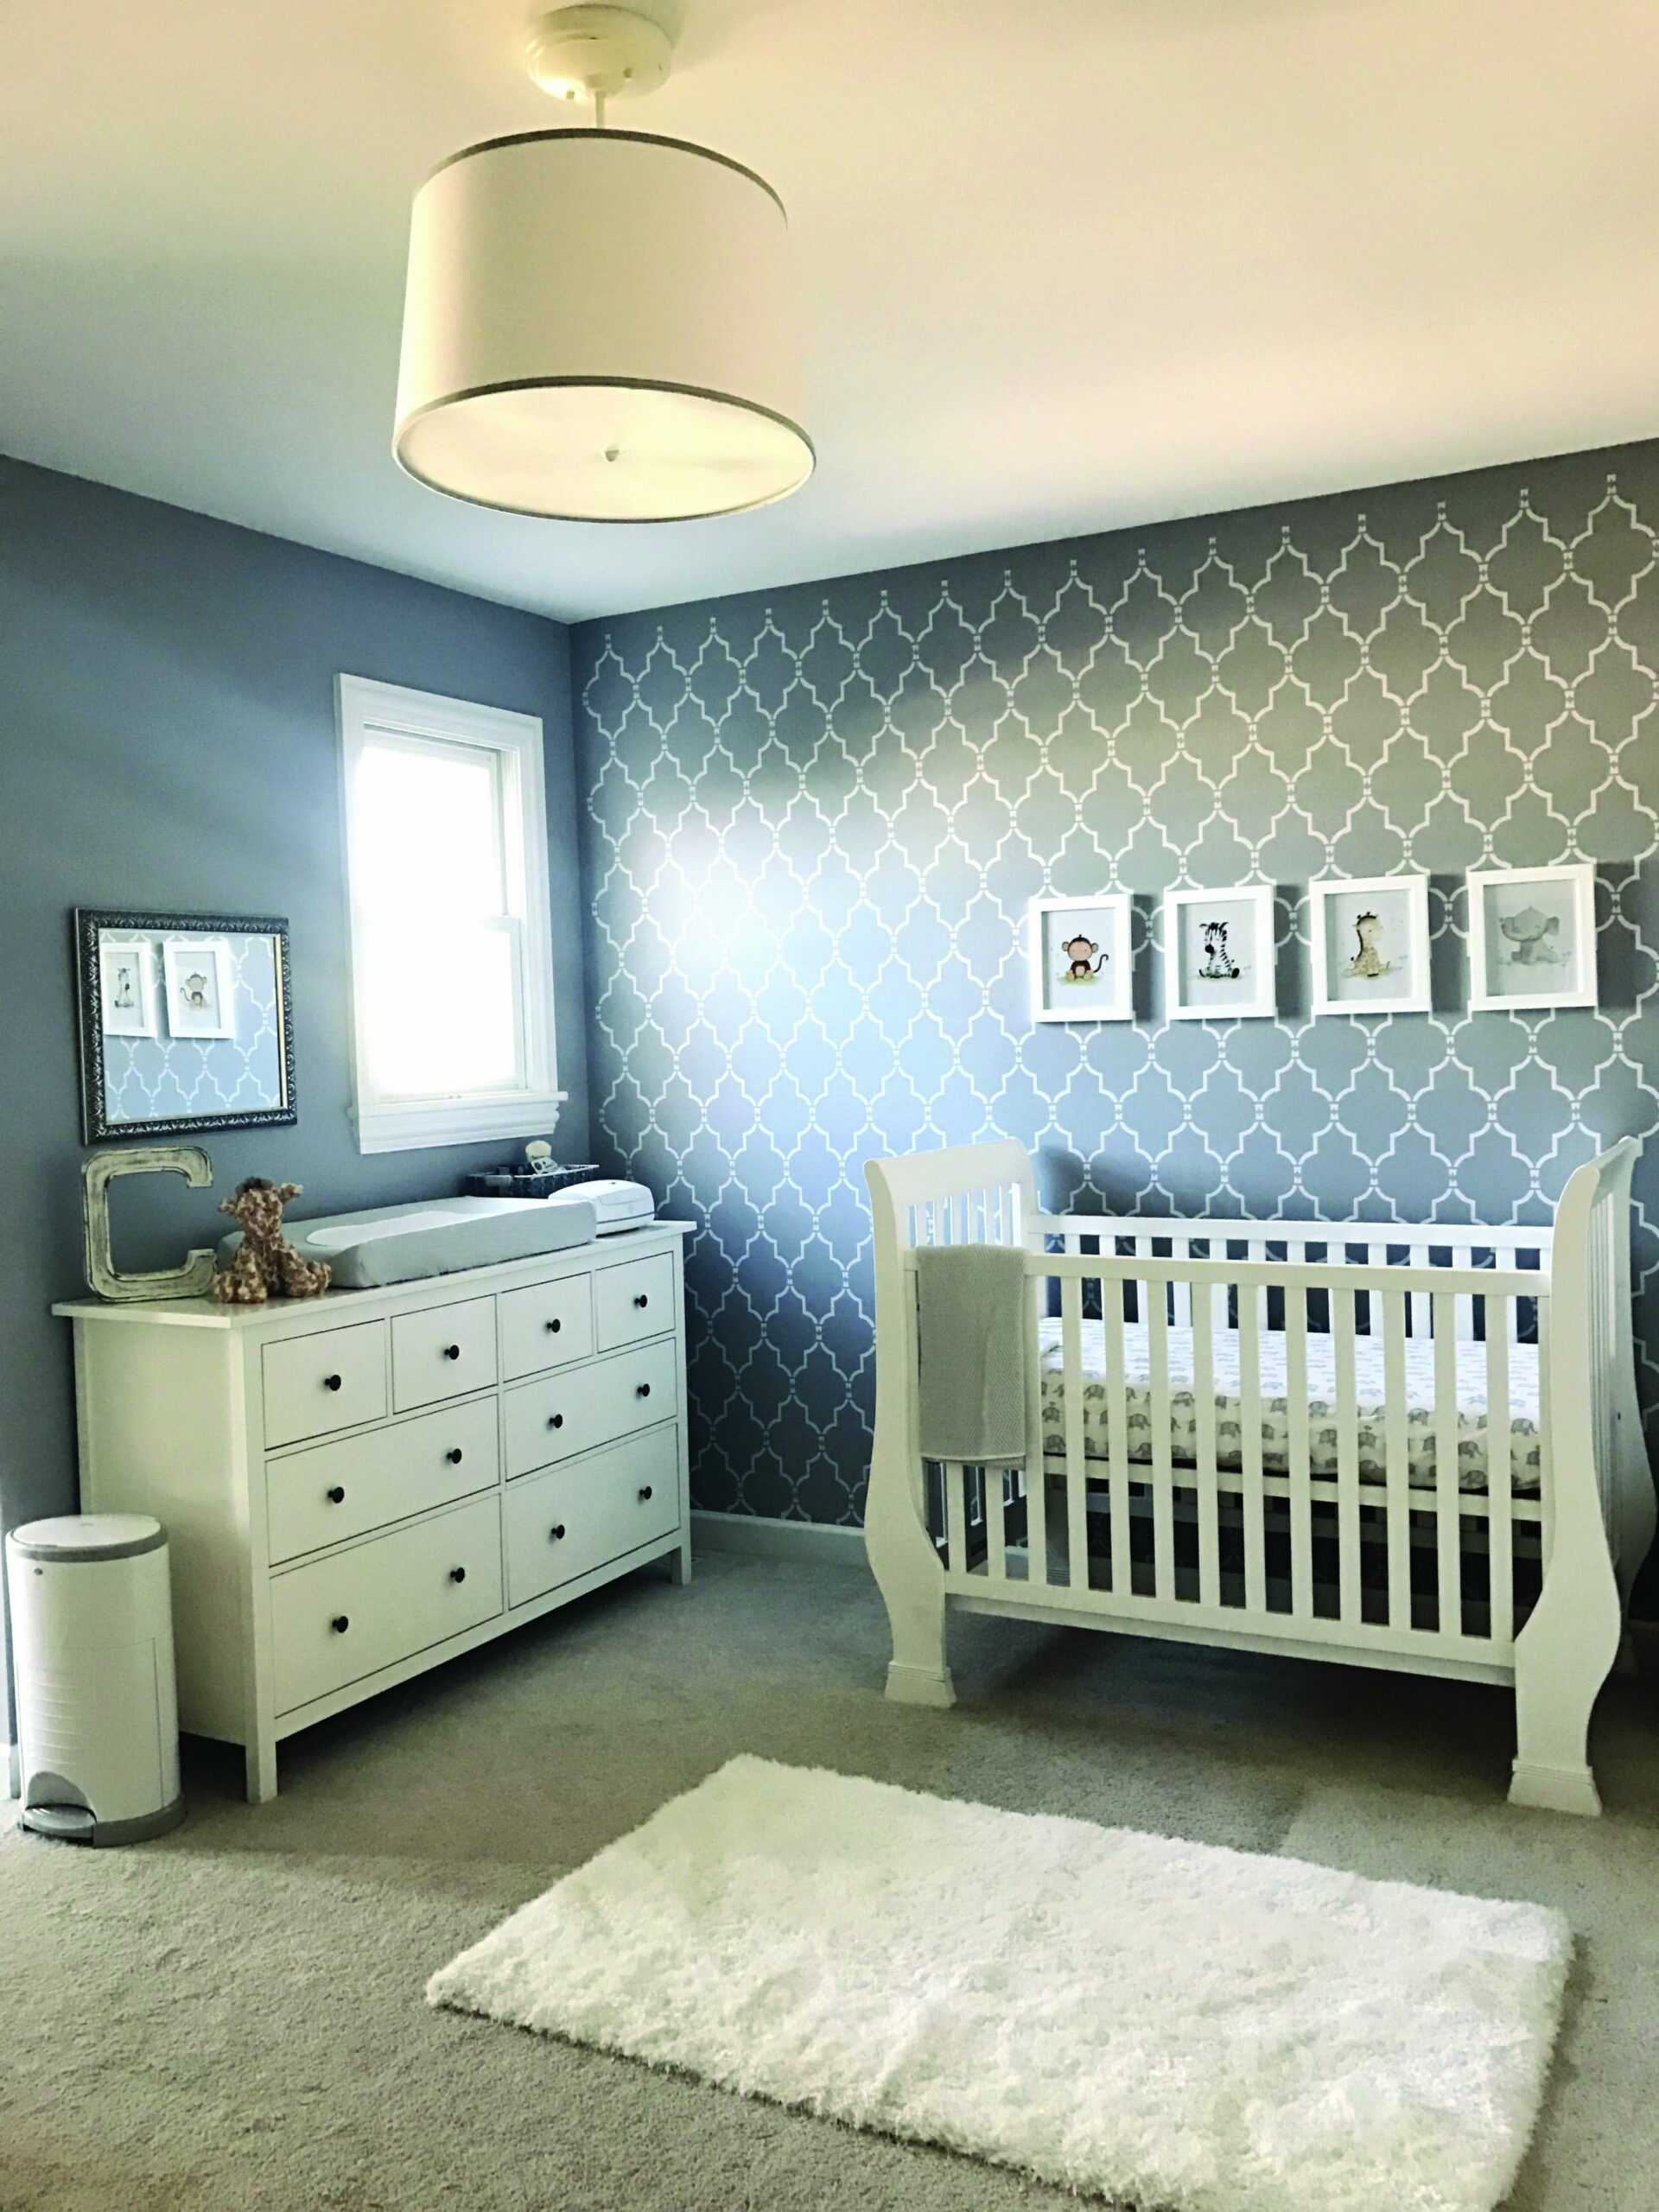 Sweet and also Simple Nursery Designs | Baby nursery decor, Baby ...